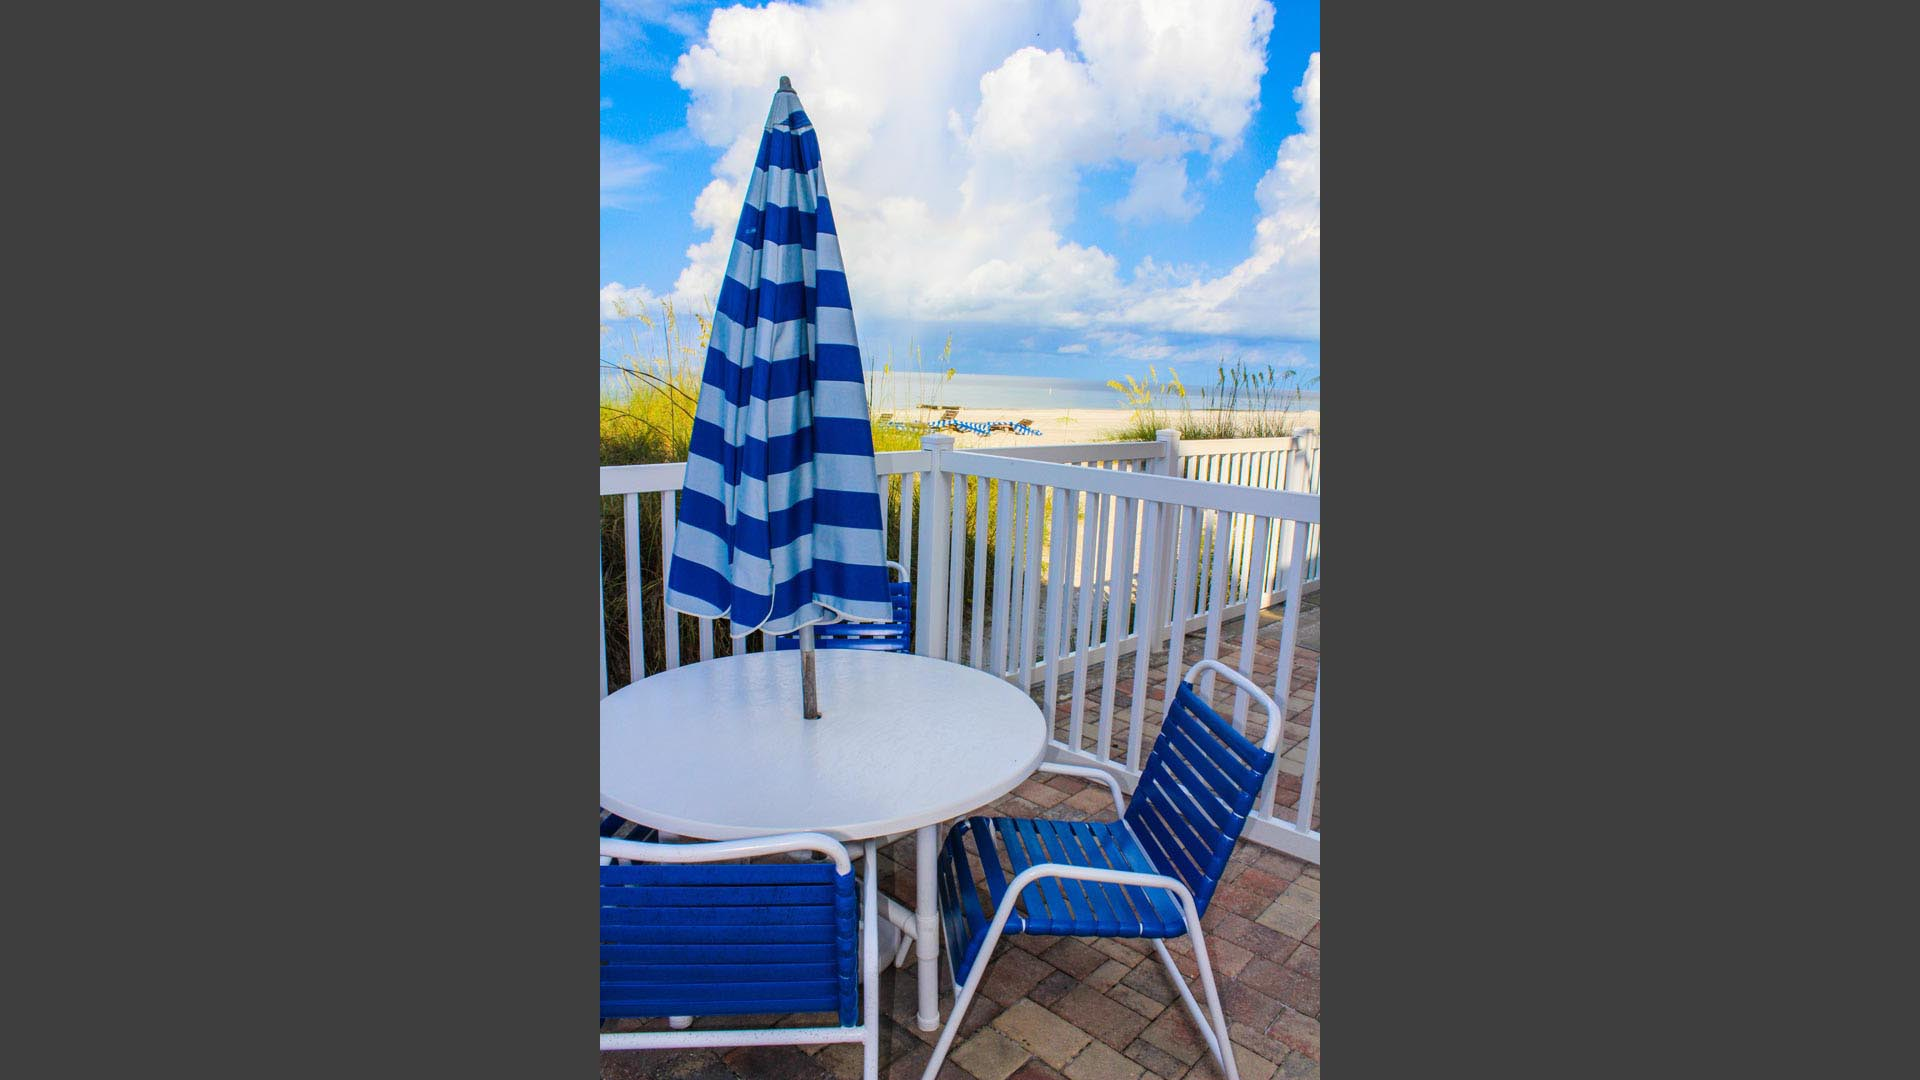 A balcony view to the beach at VRI's Island Gulf Resort in Madeira Beach, Florida.